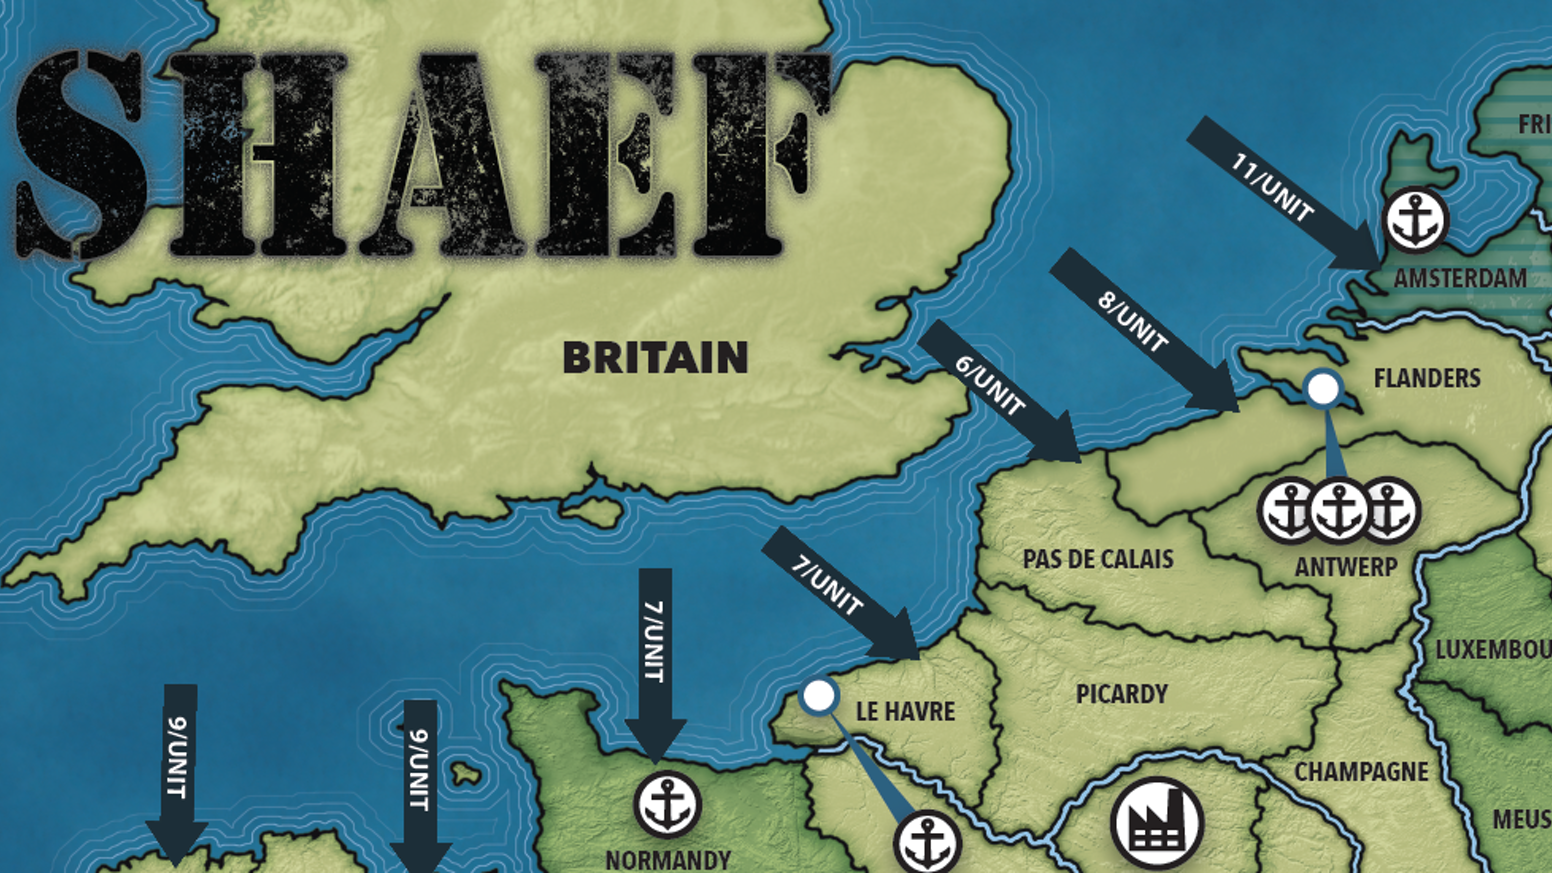 Ian brodys shaef world war 2 board game by will townshend psc a two player card driven world war ii strategy game covering the period gumiabroncs Image collections